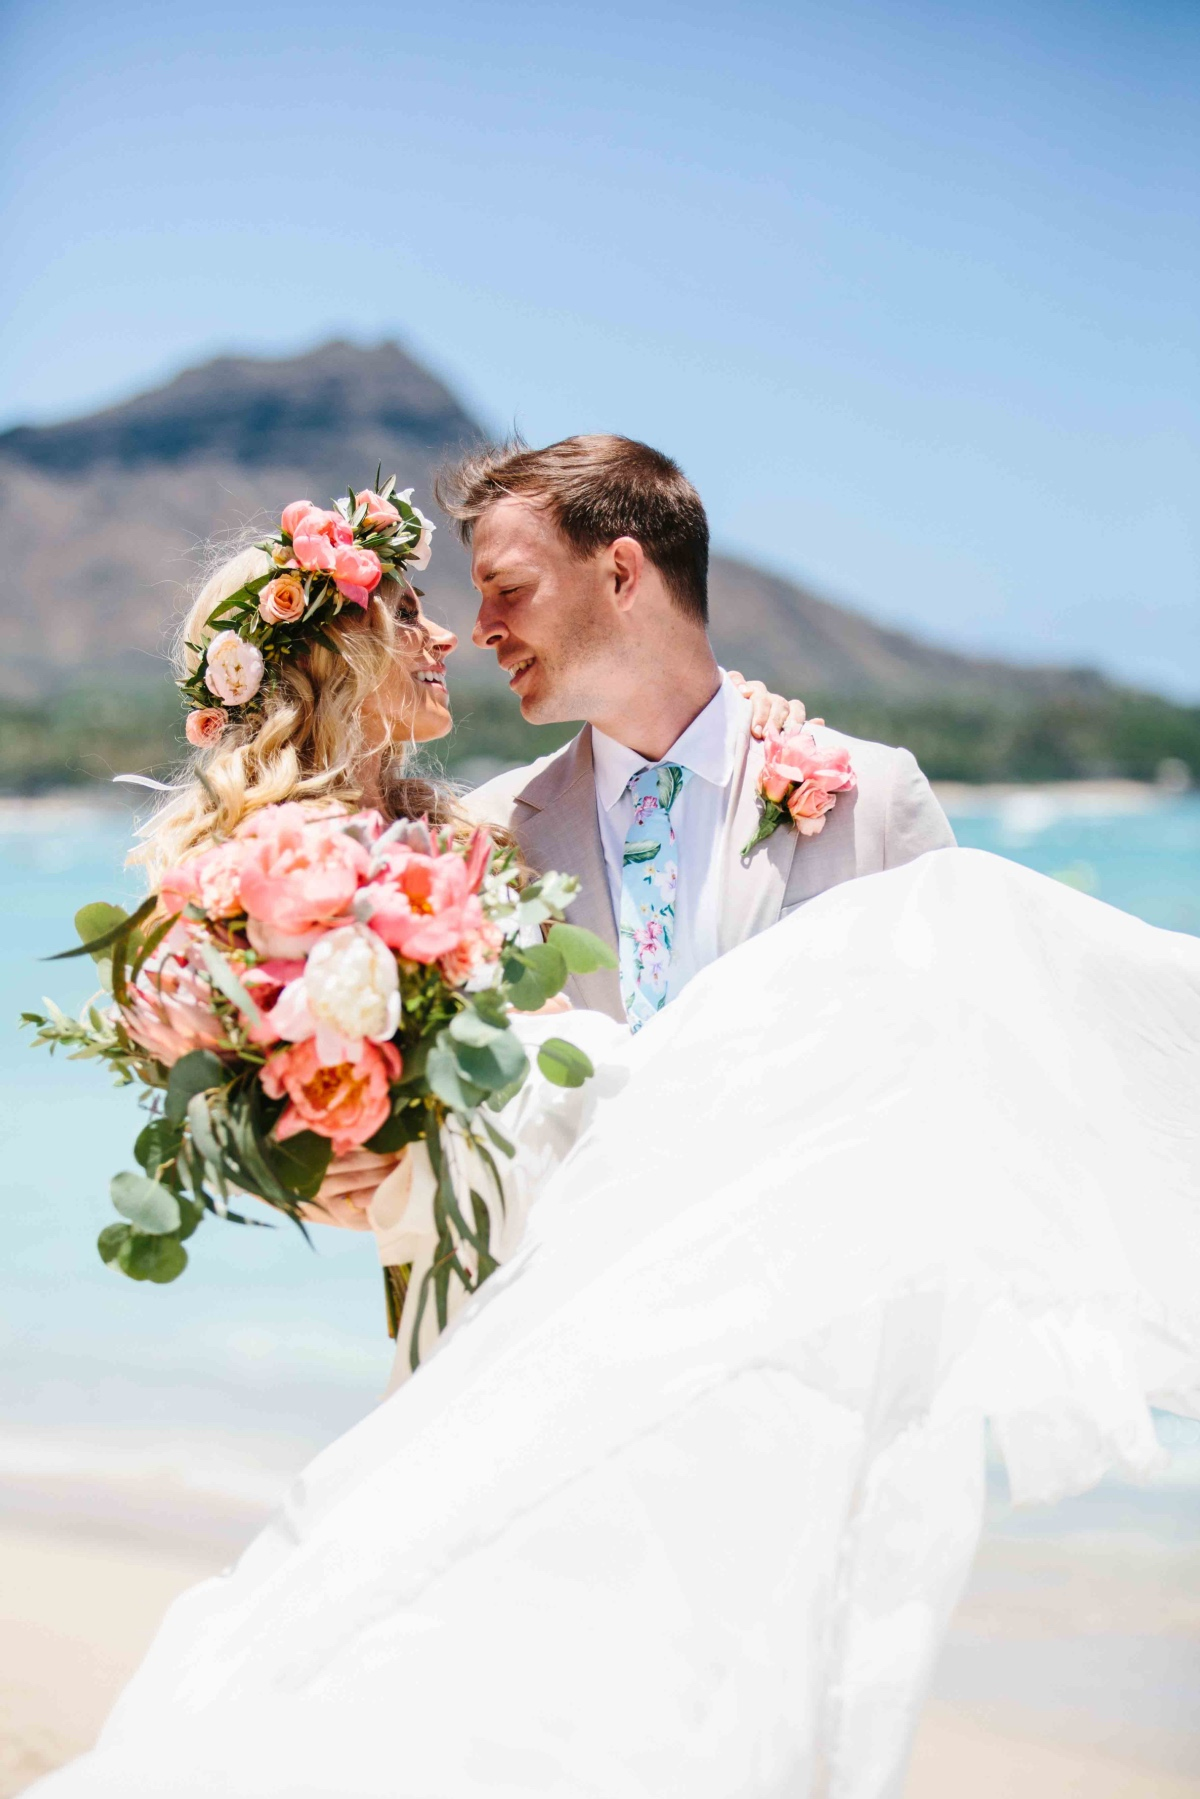 It's My Wedding Day Beaches! A Tropical Boho Wedding at the Iconic Pink Hotel of Waikiki.